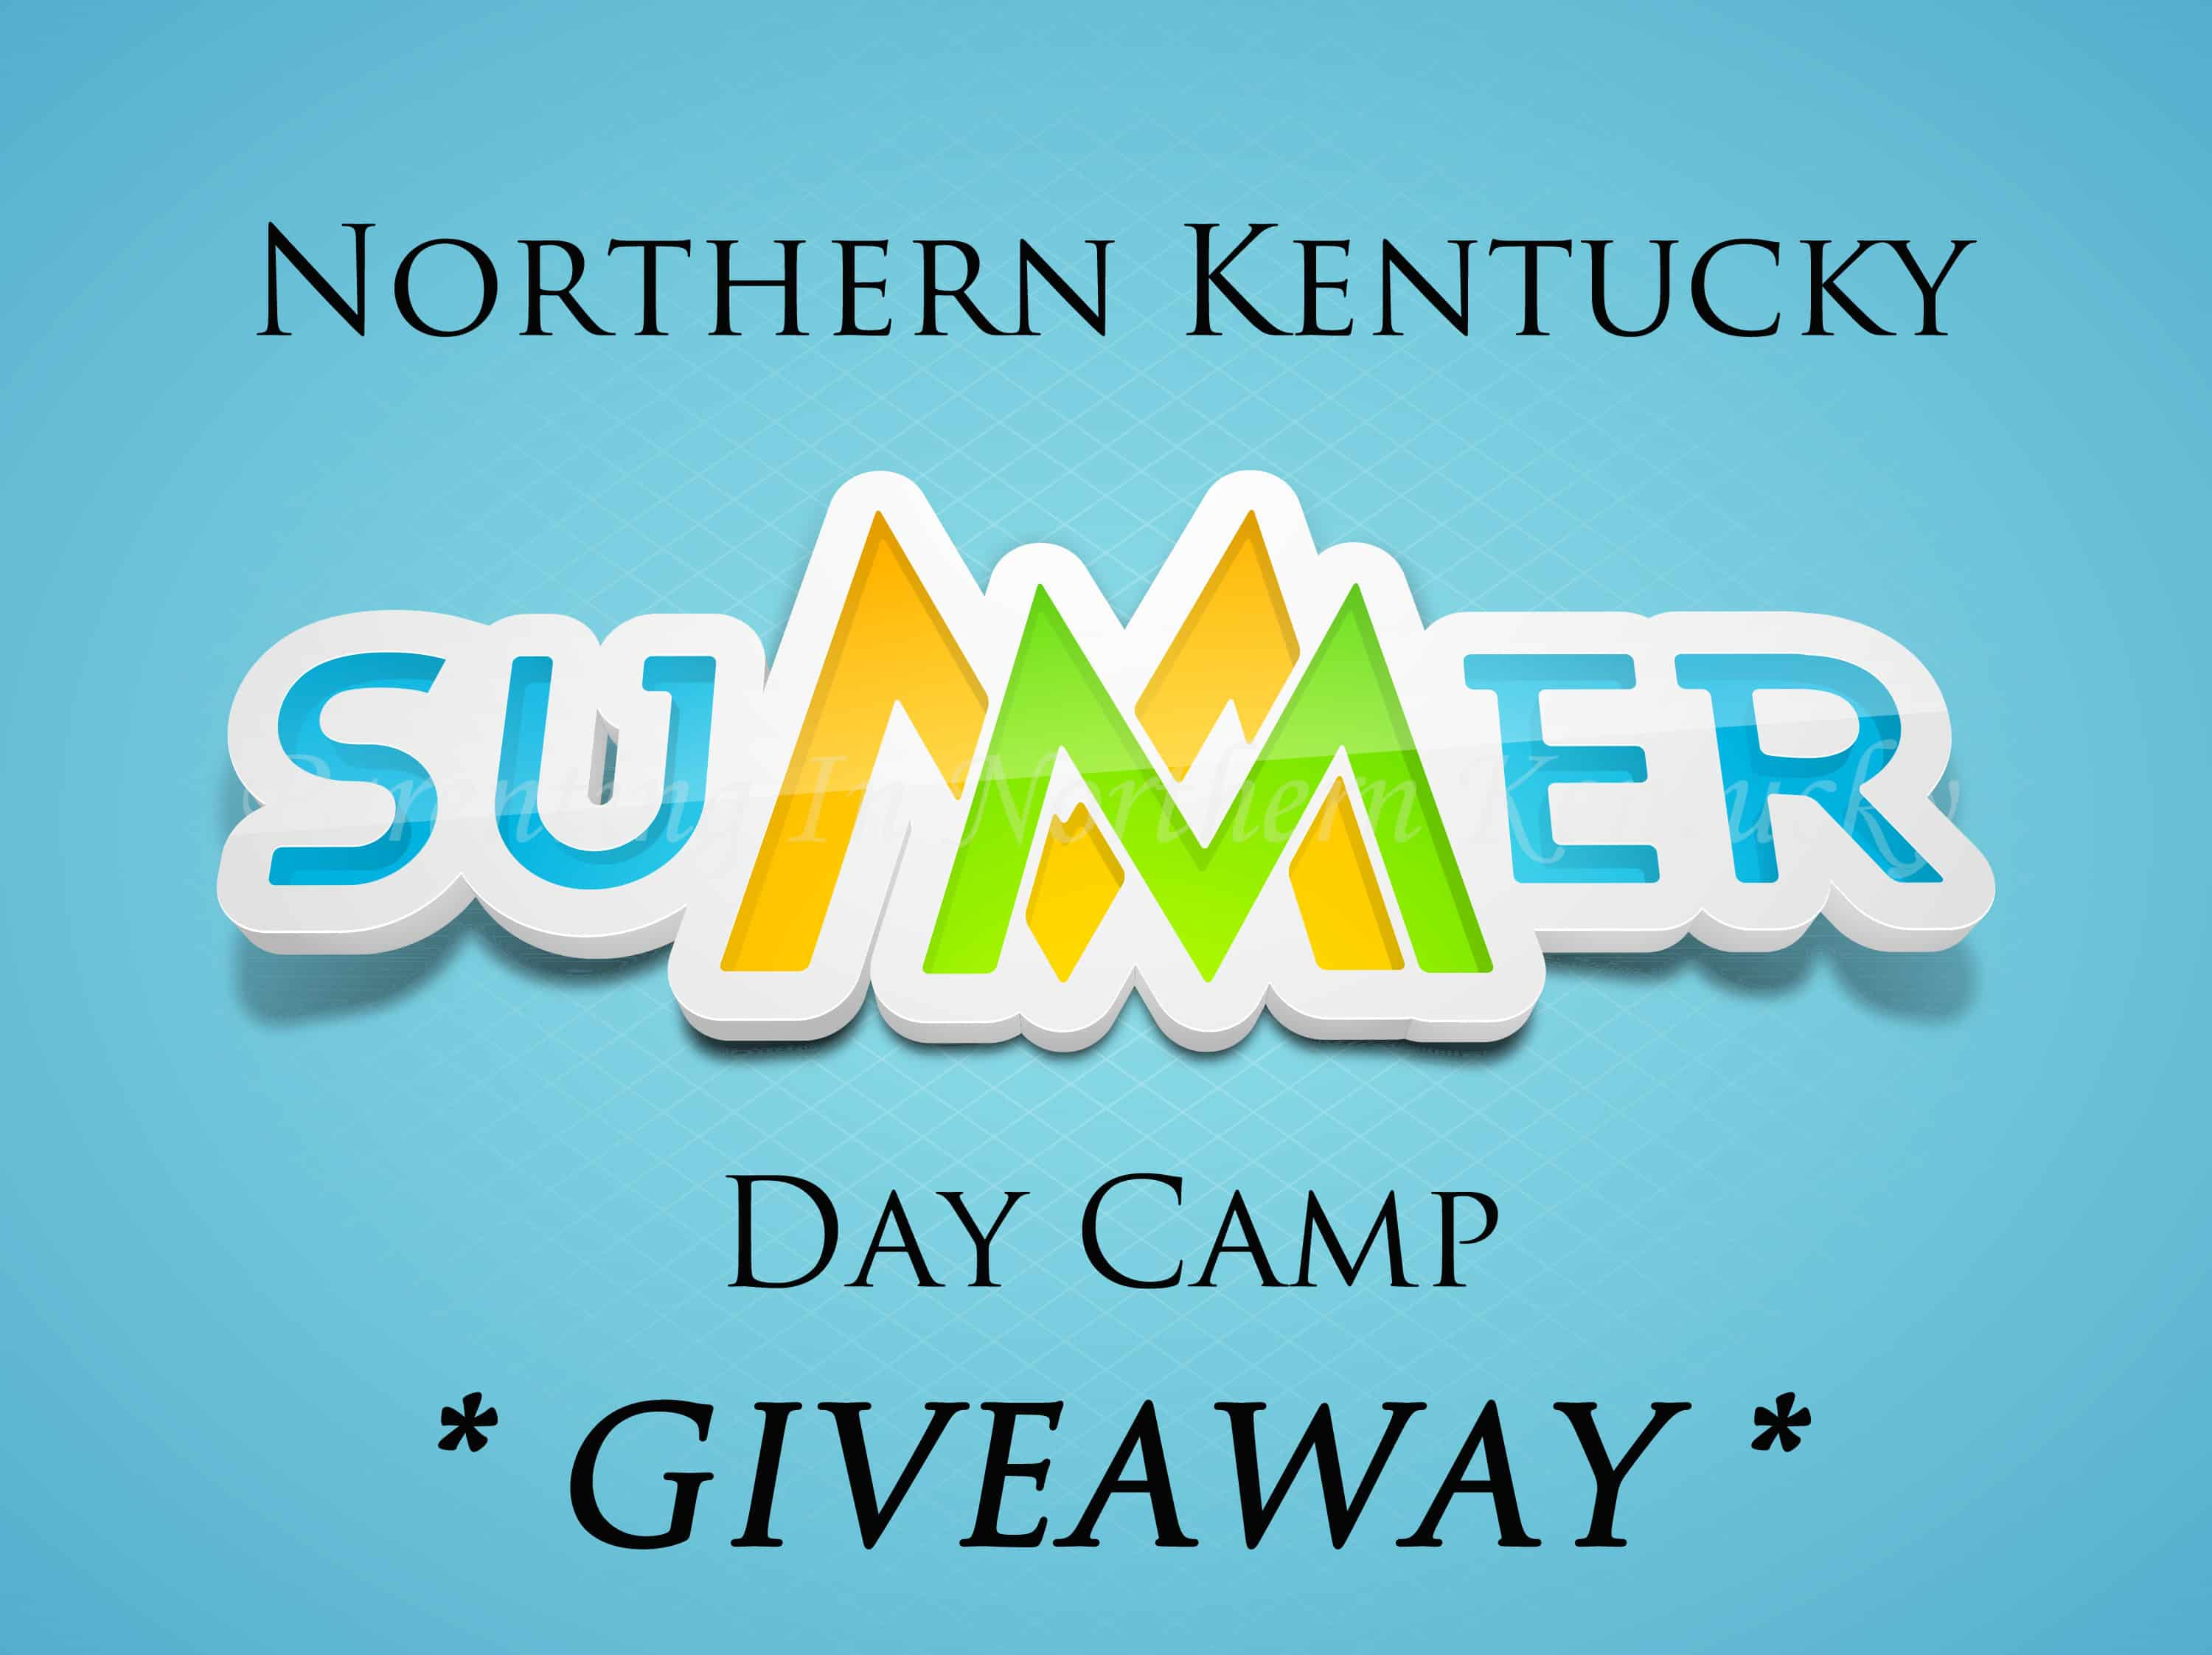 Northern Kentucky Summer Day Camp Giveaway